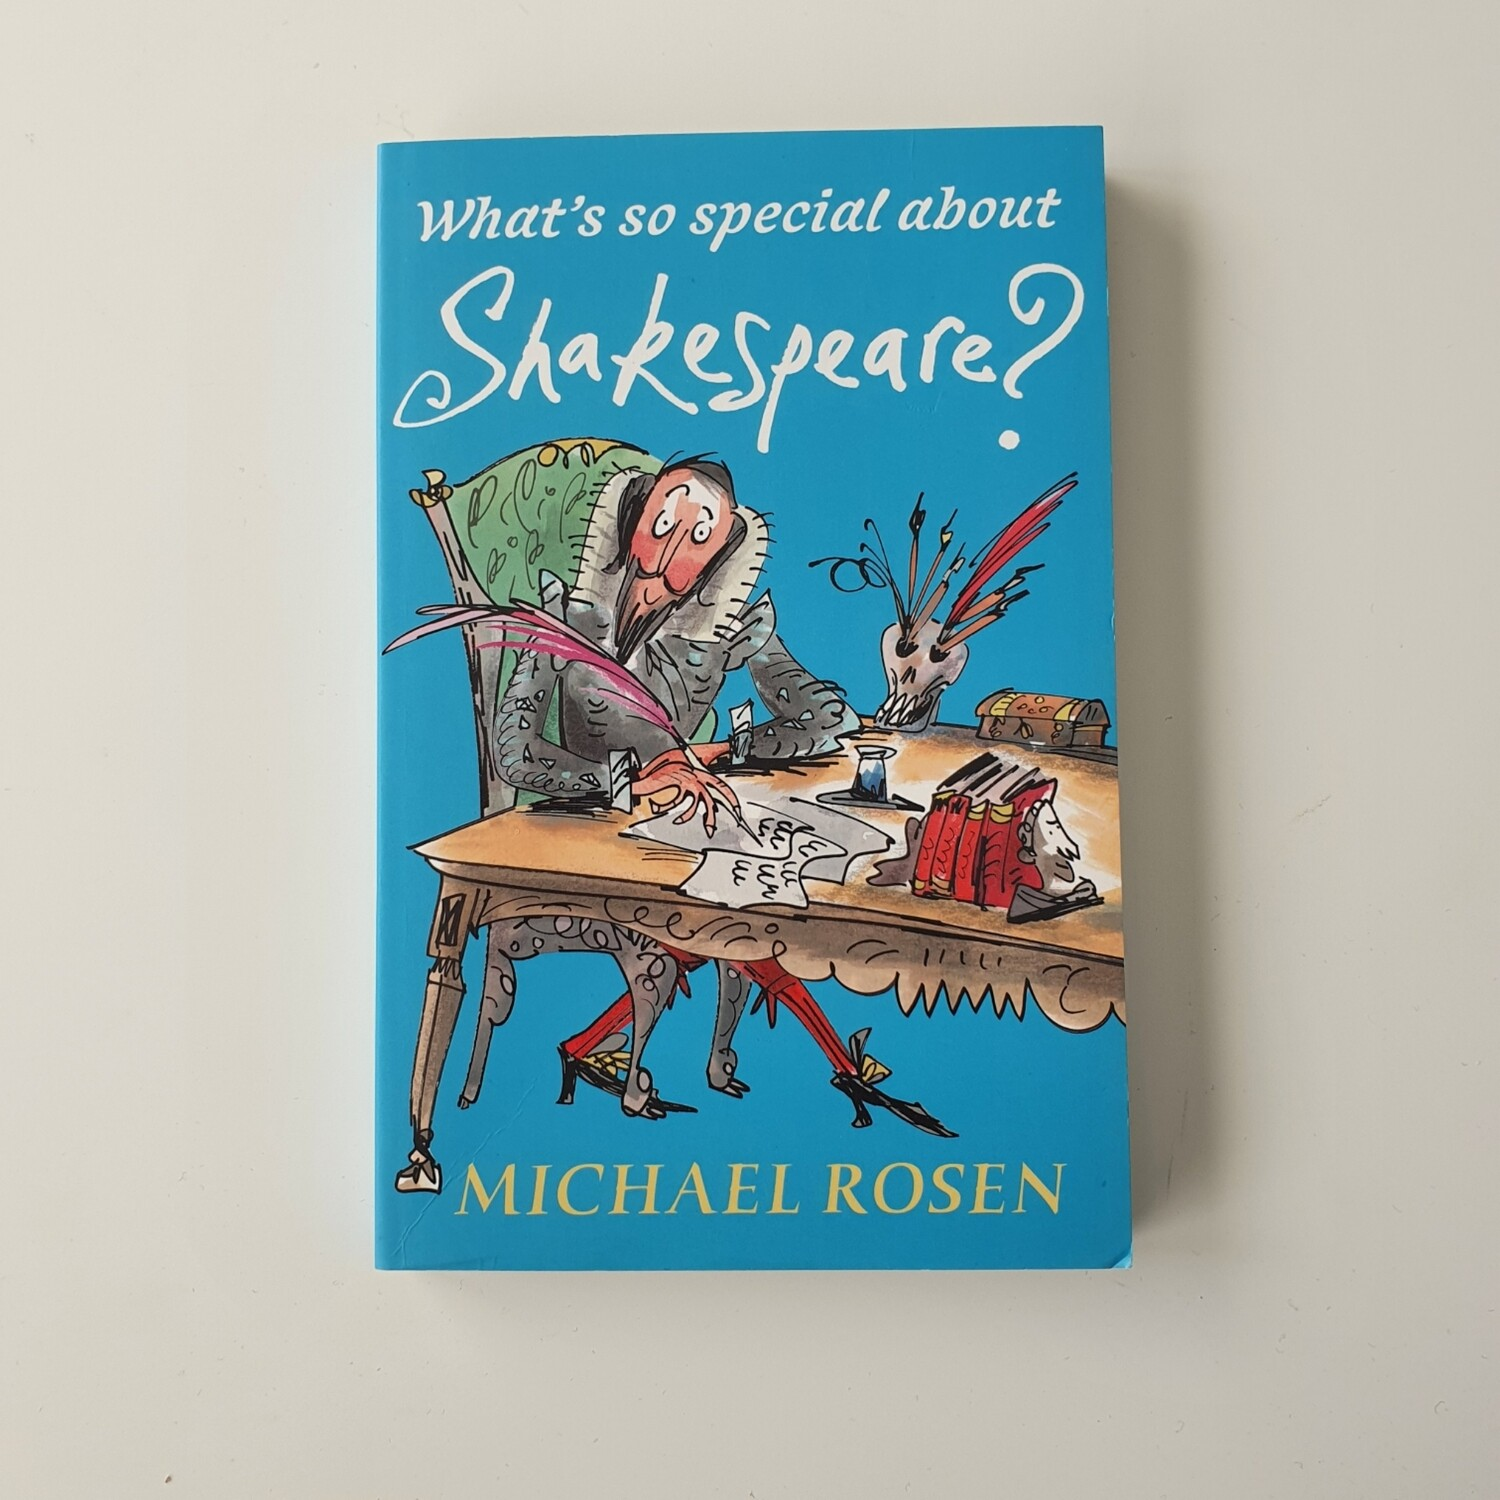 What's so special about Shakespeare? made from a paperback book